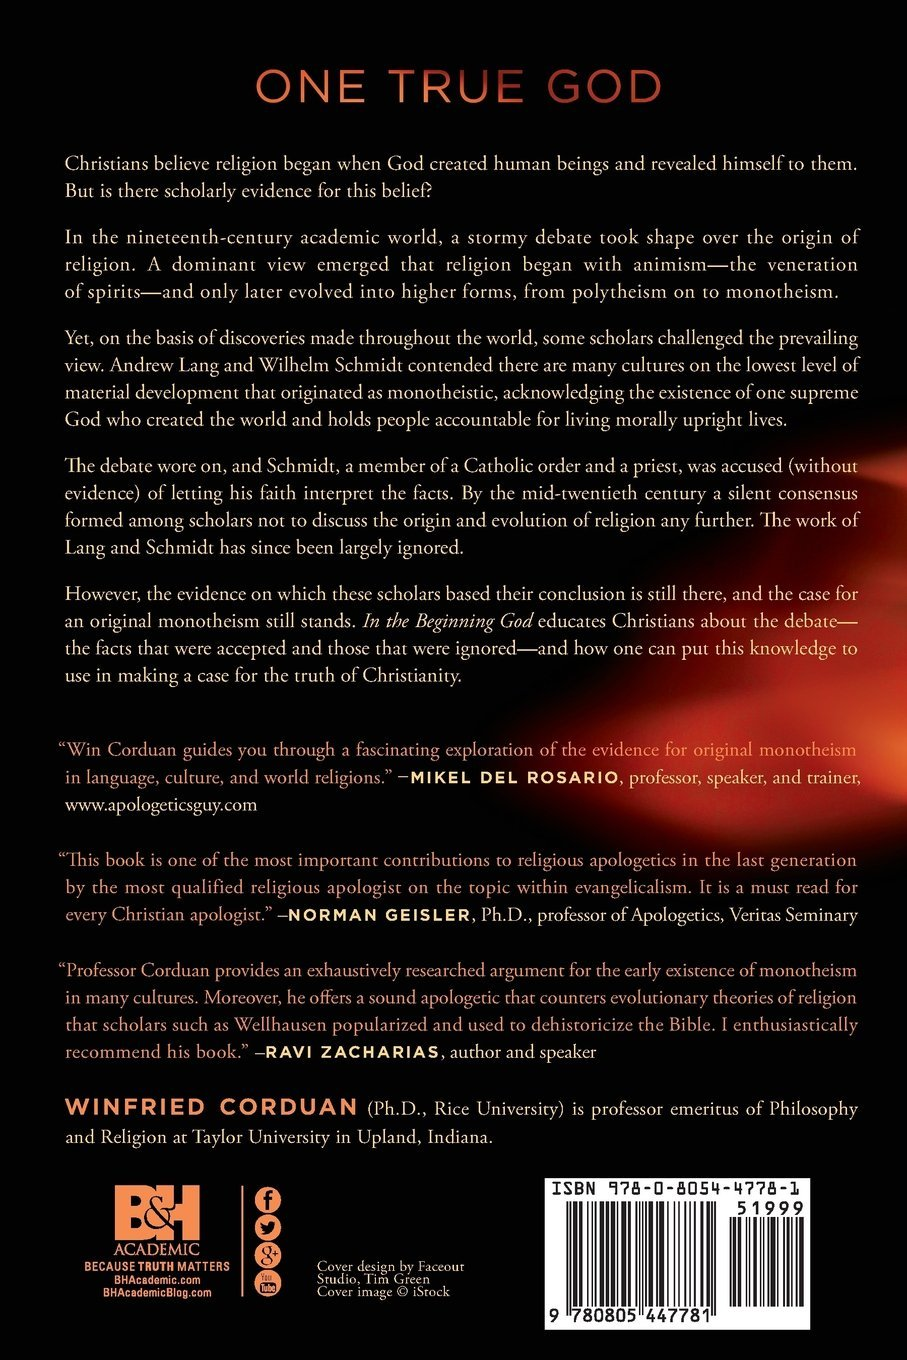 In The Beginning God A Fresh Look At Case For Original Monotheism Winfried Corduan 9780805447781 Amazon Books